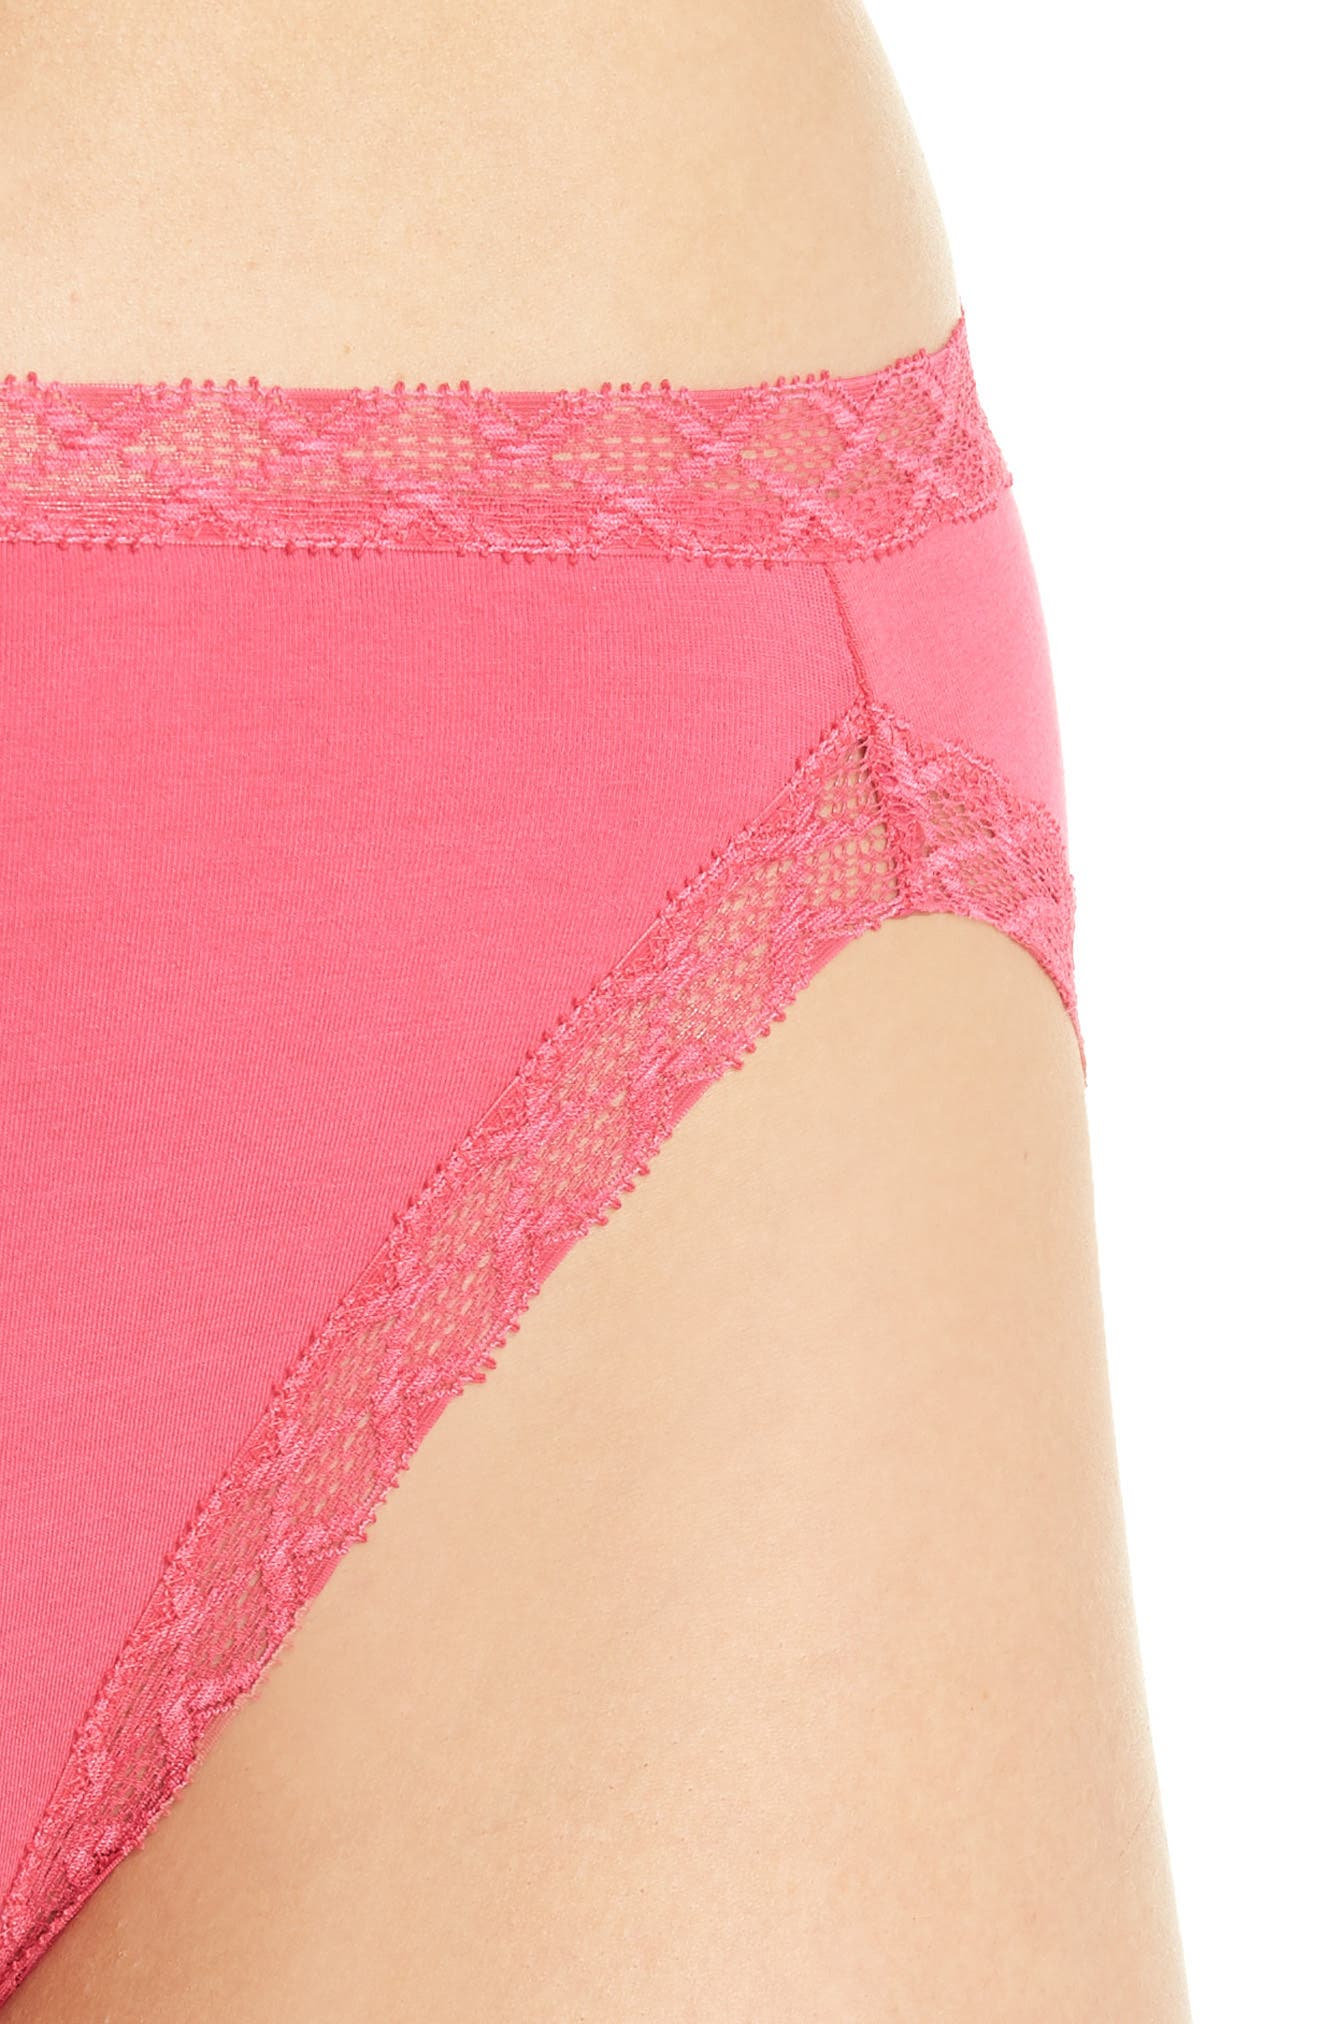 Bliss French Cut Briefs,                             Alternate thumbnail 4, color,                             HOT PINK